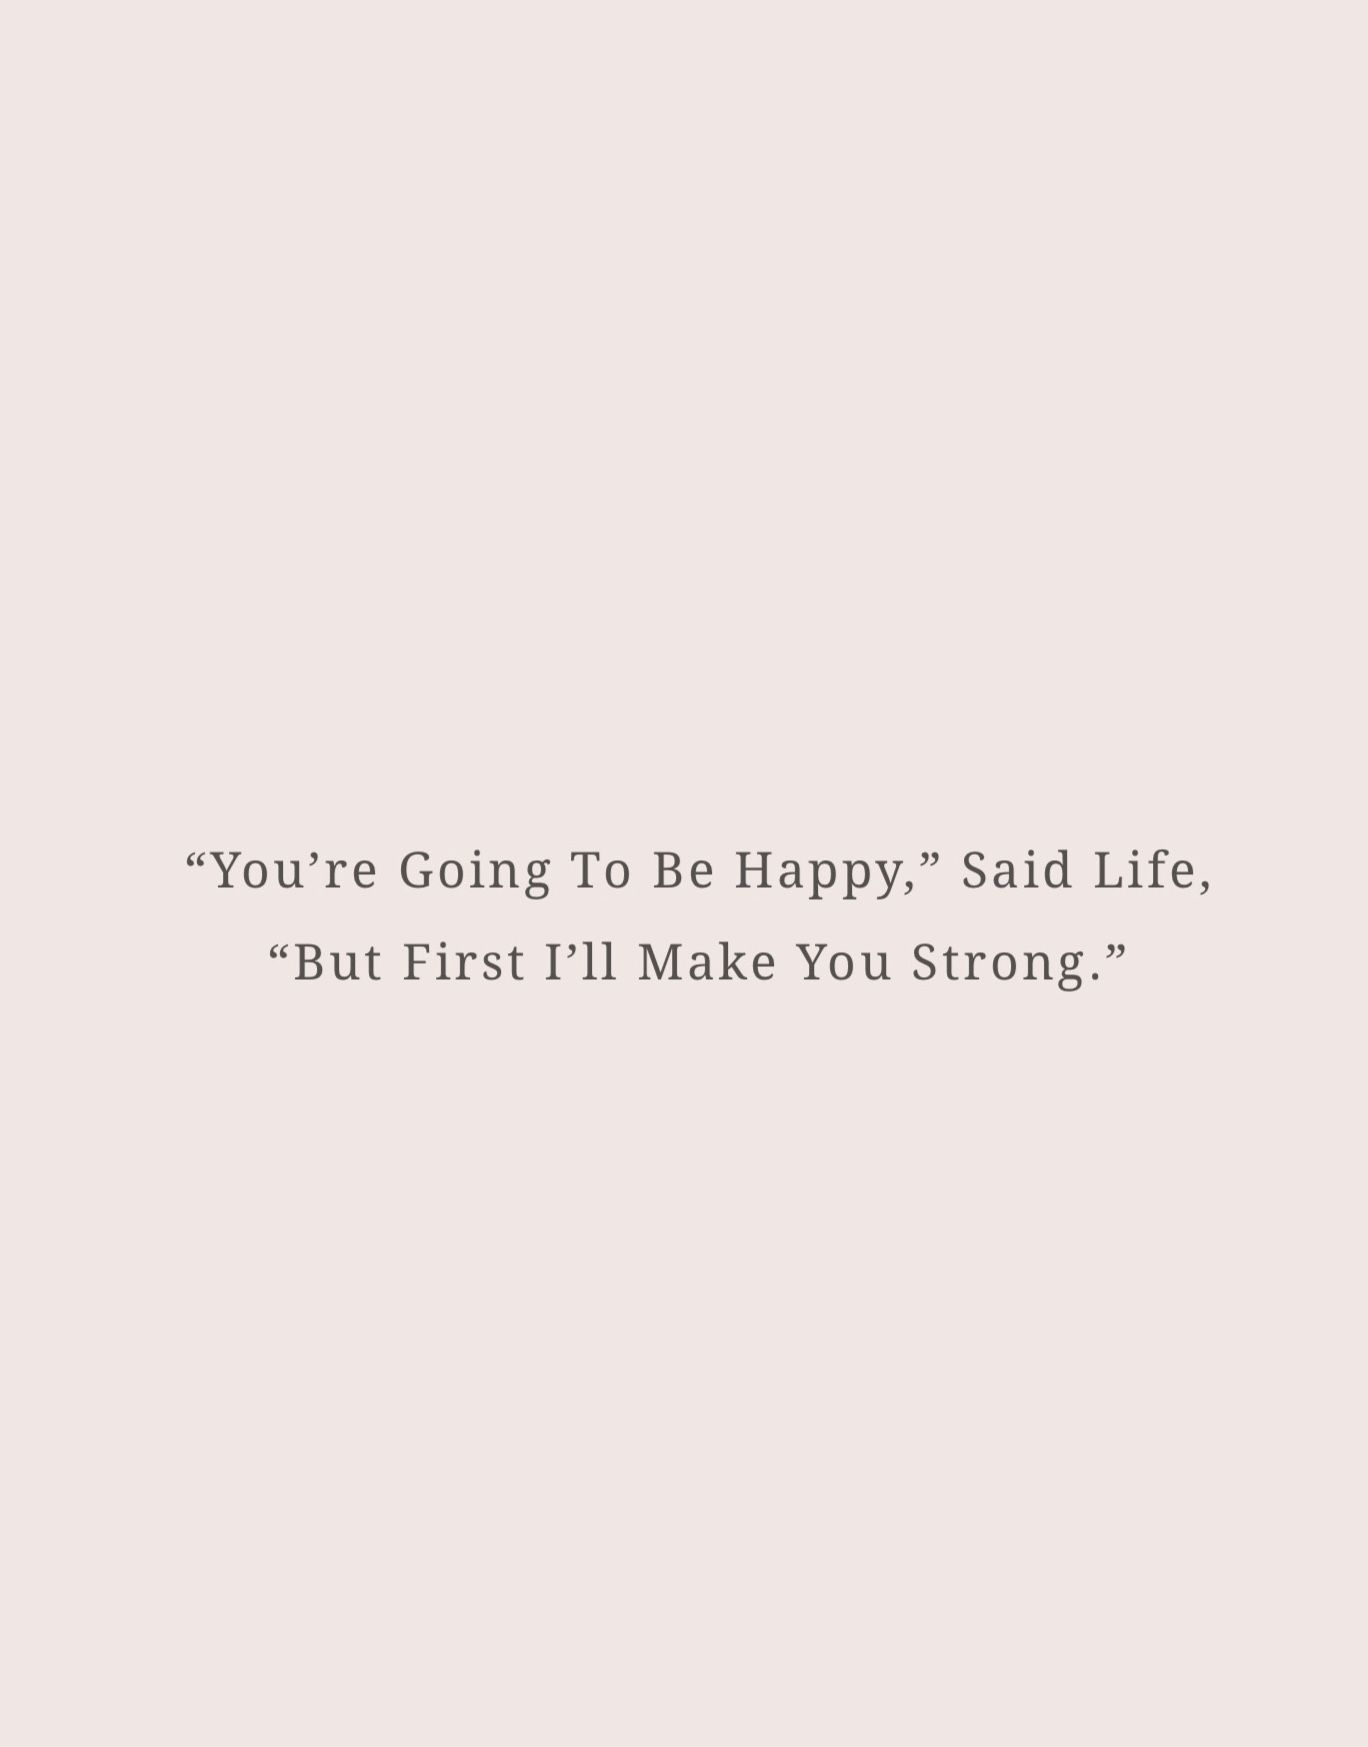 You're going to be happy, said life, but first I'll make you strong, quote. #quotes #inspiration #life #strength #happy #quotesaboutlife #happiness #happinessquotes #strongwomen